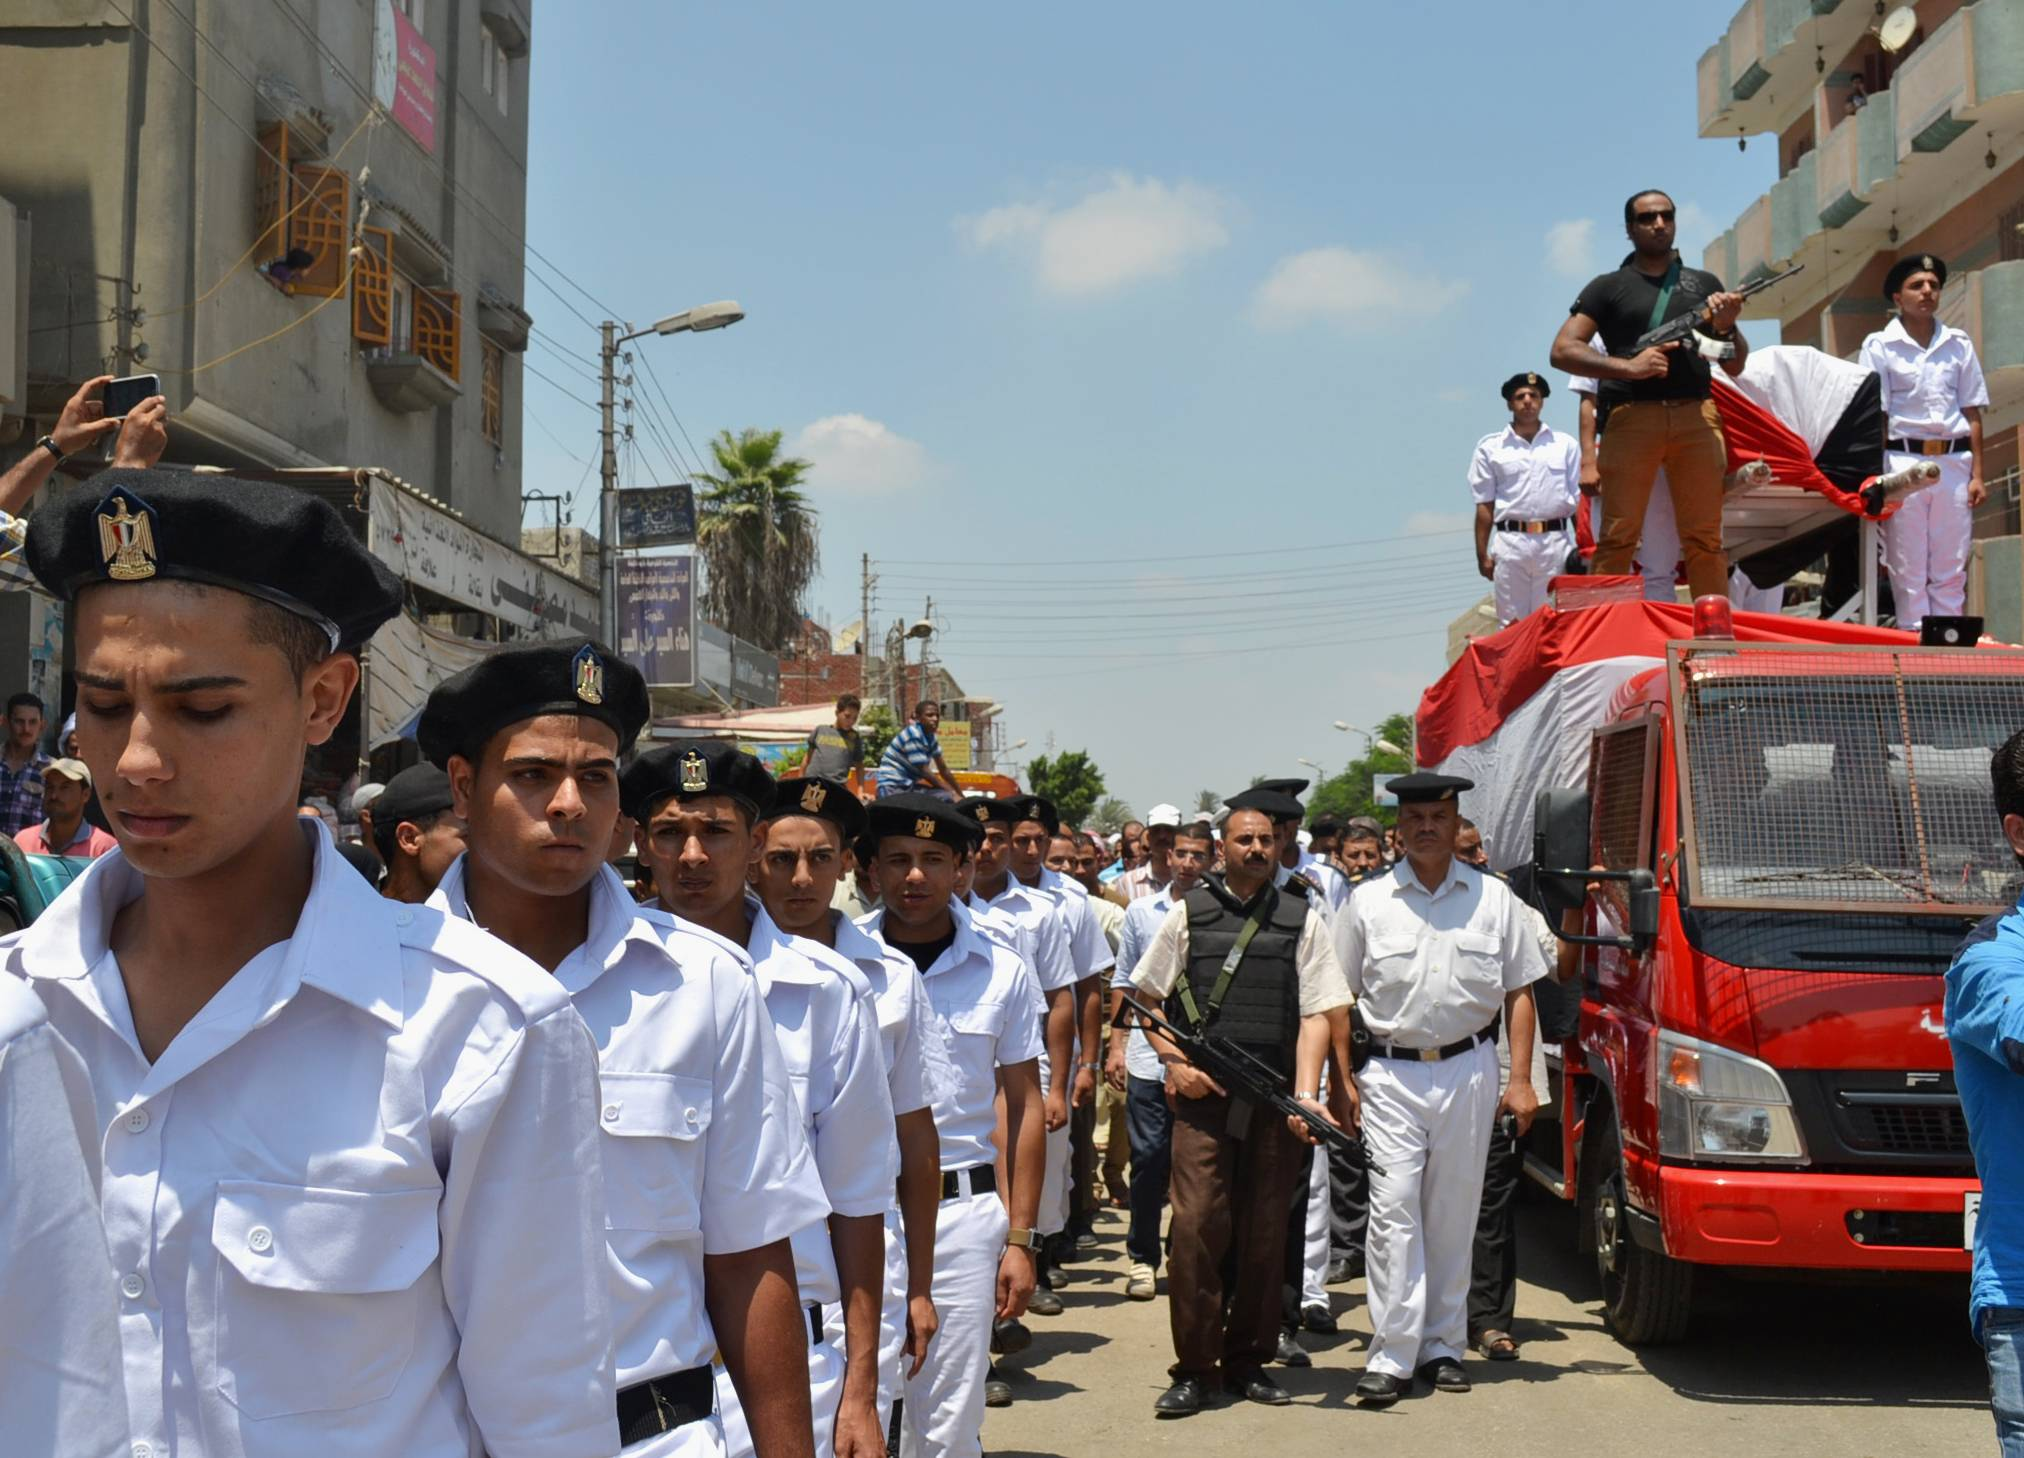 Members of the Egyptian security forces attend the funeral for a police officer who was killed by unknown gunmen Friday, while marching on a street in Abou Khalifa in the Ismailia governorate, 120 kilometers (75 miles) east of Cairo, Egypt, Saturday, July 19, 2014. According to officials, the officer was shot dead by unknown gunmen in el-Arish, a city in the Sinai, where Egypt is fighting Islamic extremists. (